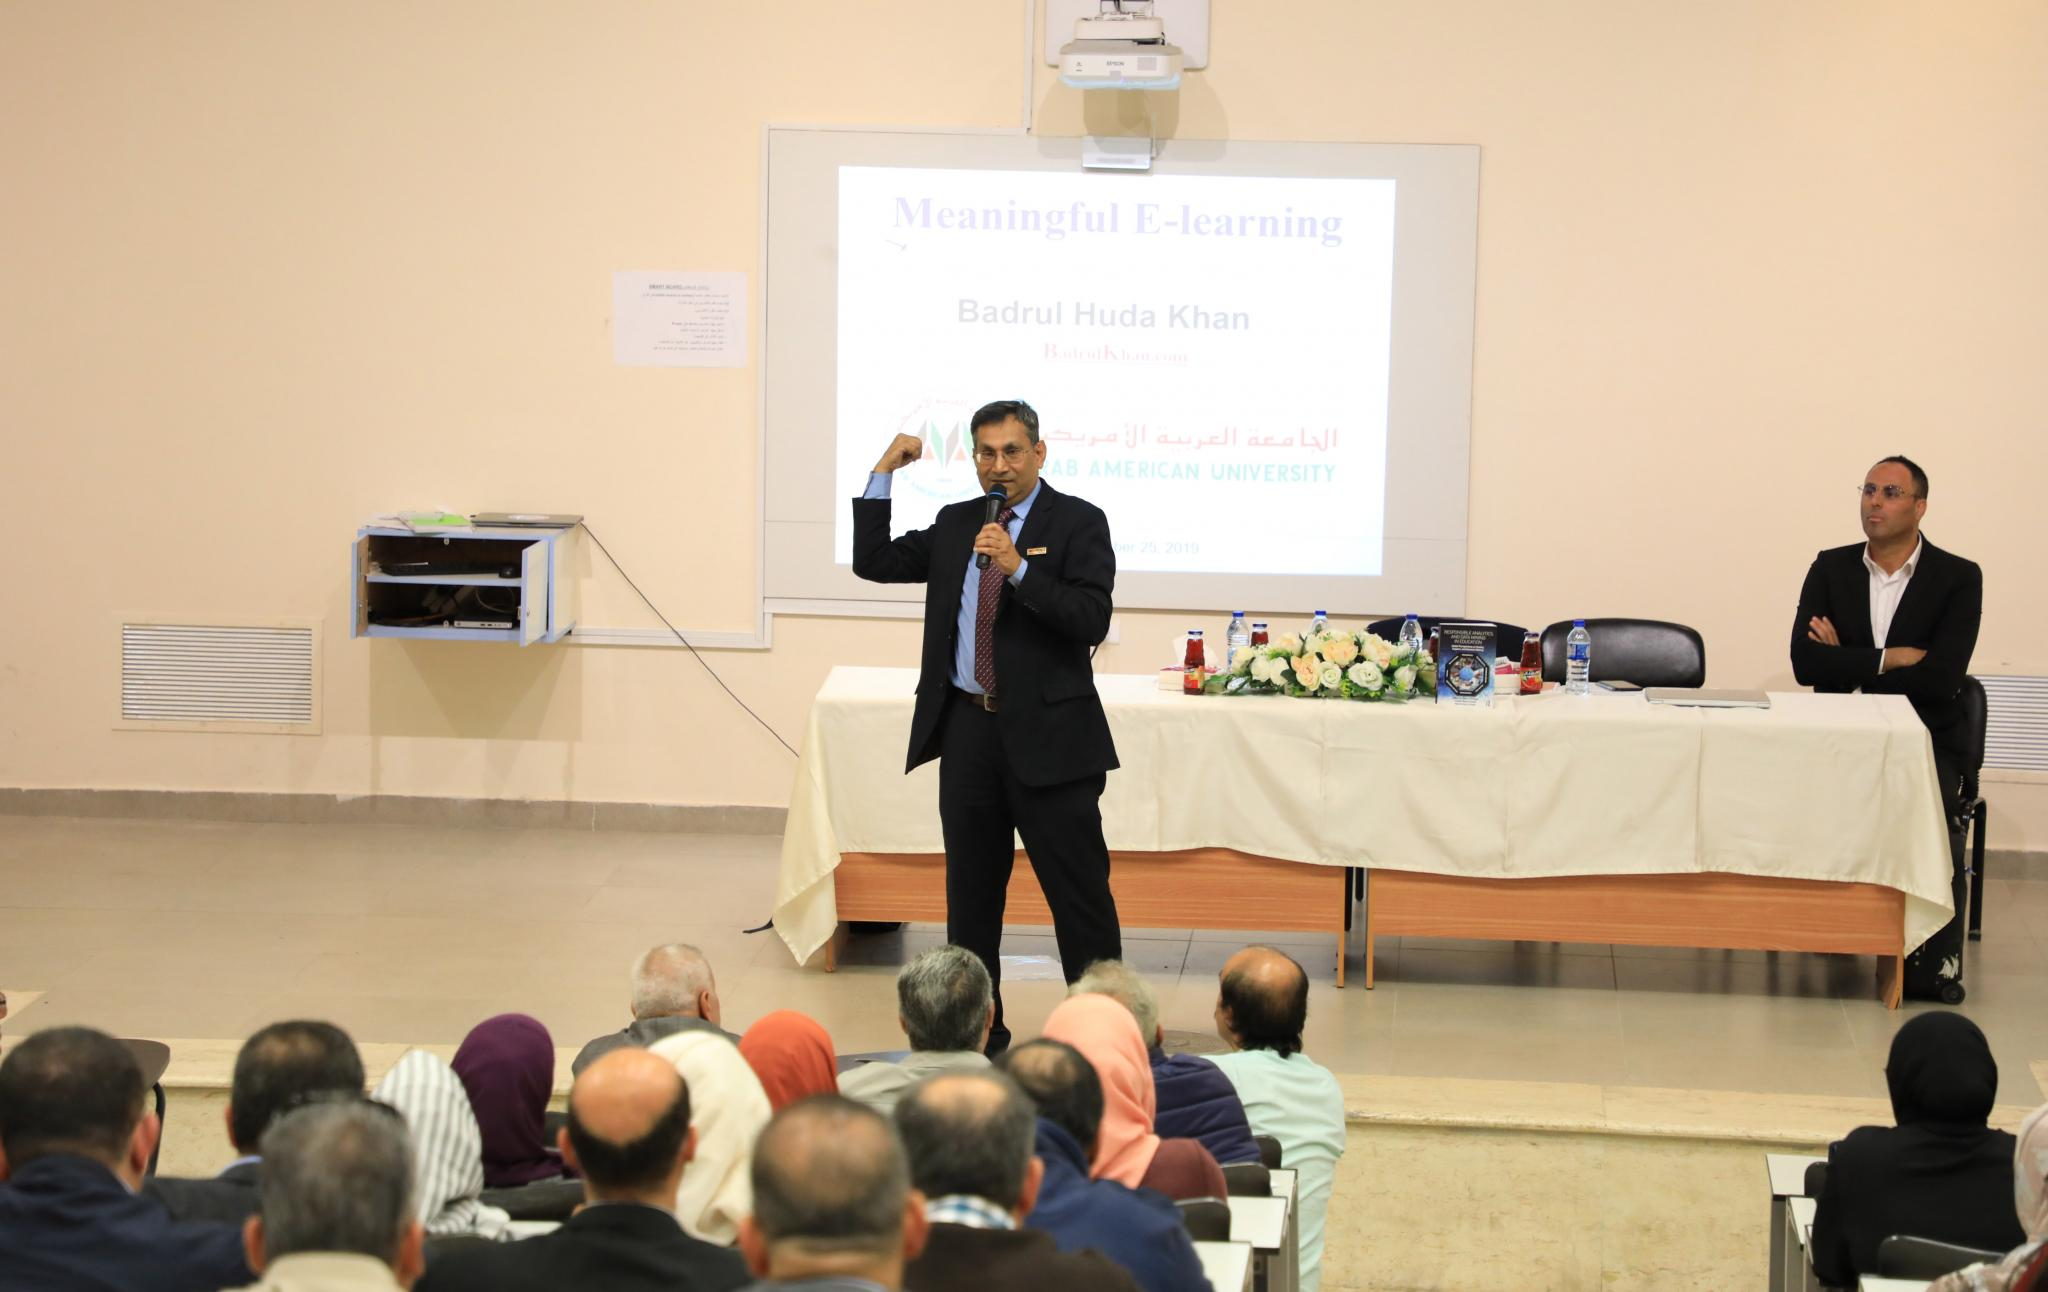 AAUP Hosts the International Expert Bader ALHuda Khan in a Workshop about Electronic Learning